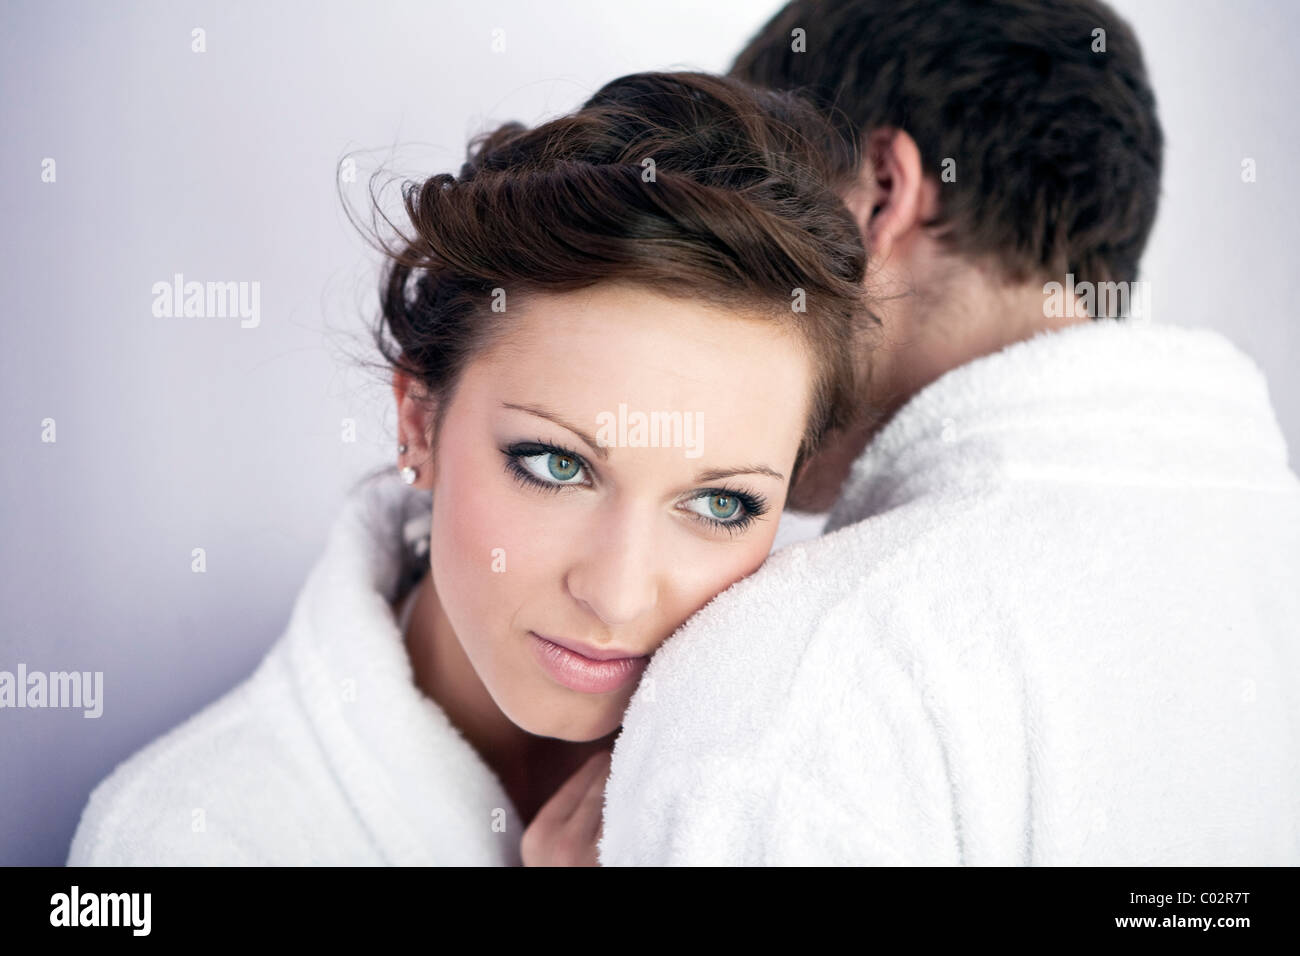 young woman and young man in bathrobe, hug - Stock Image